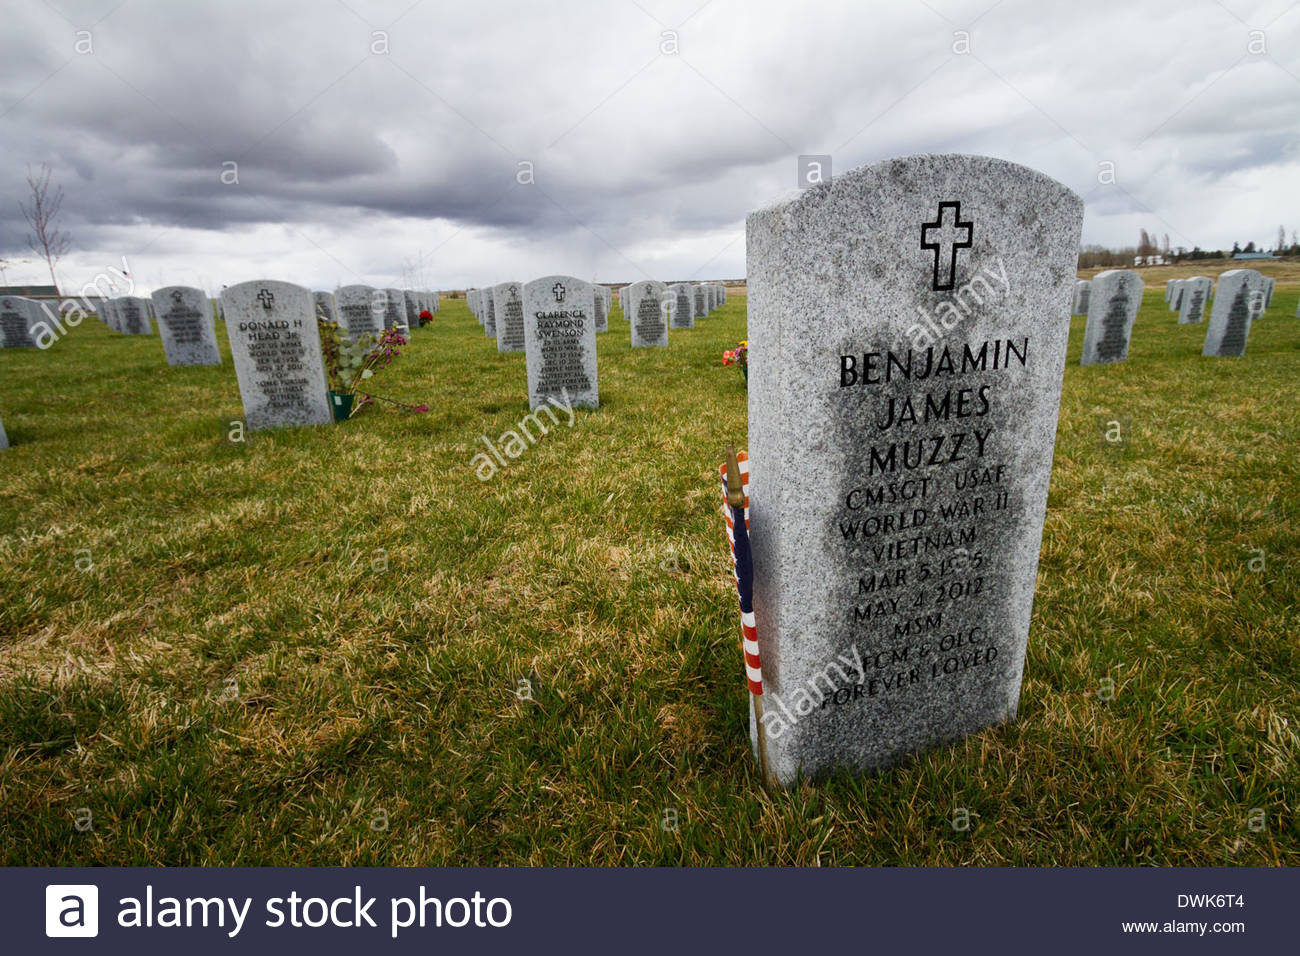 Miltary grave tombstones with American flags sit under a gray sky in Eastern Washington state, USA - Stock Image